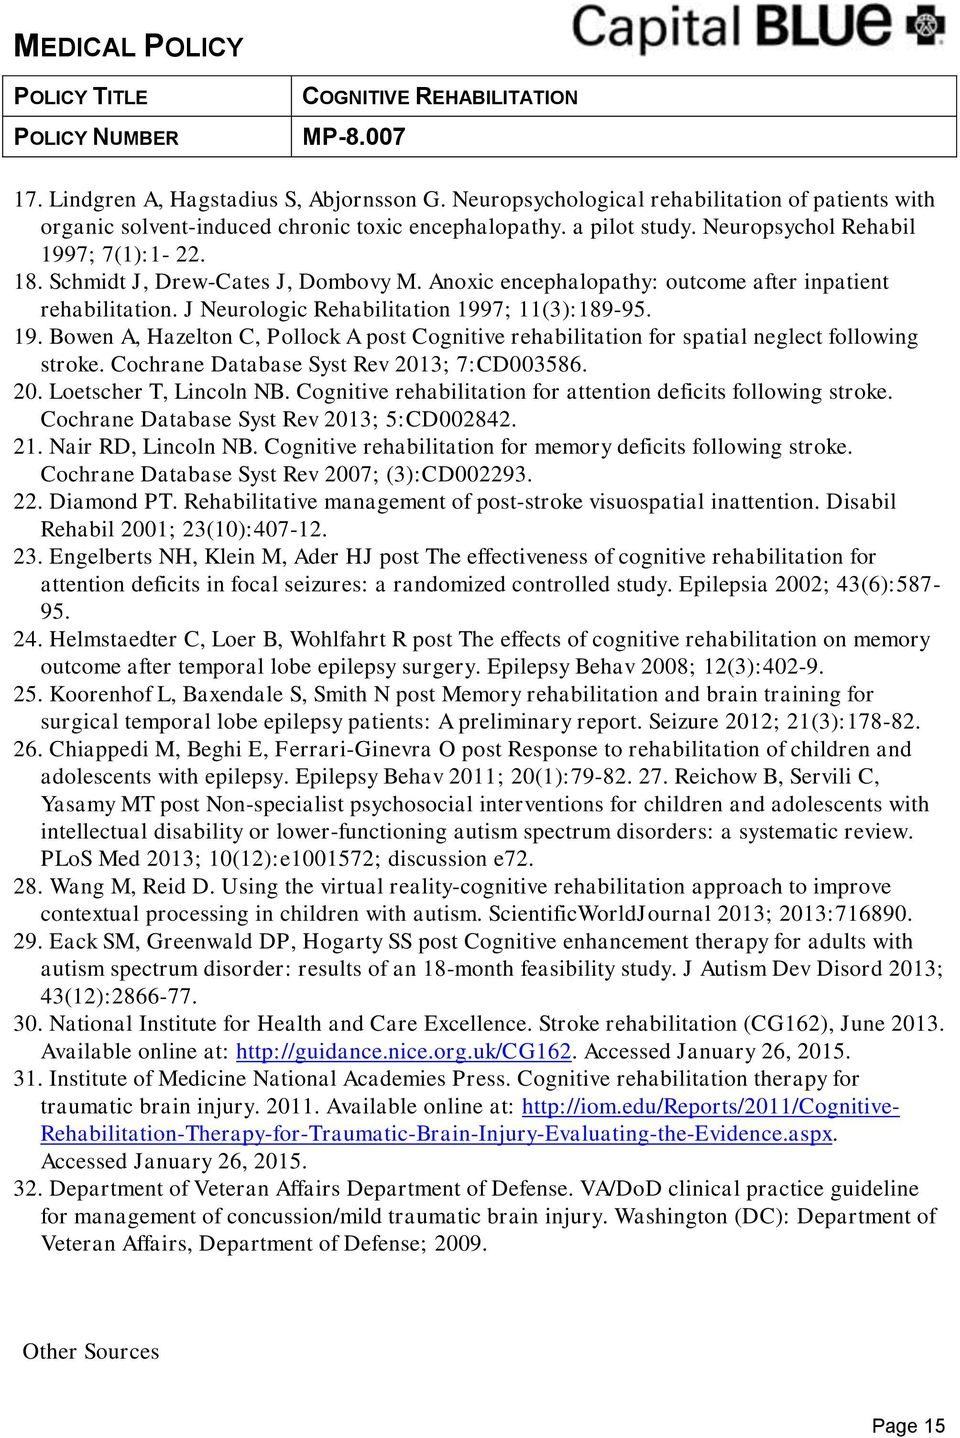 Cochrane Database Syst Rev 2013; 7:CD003586. 20. Loetscher T, Lincoln NB. Cognitive rehabilitation for attention deficits following stroke. Cochrane Database Syst Rev 2013; 5:CD002842. 21.